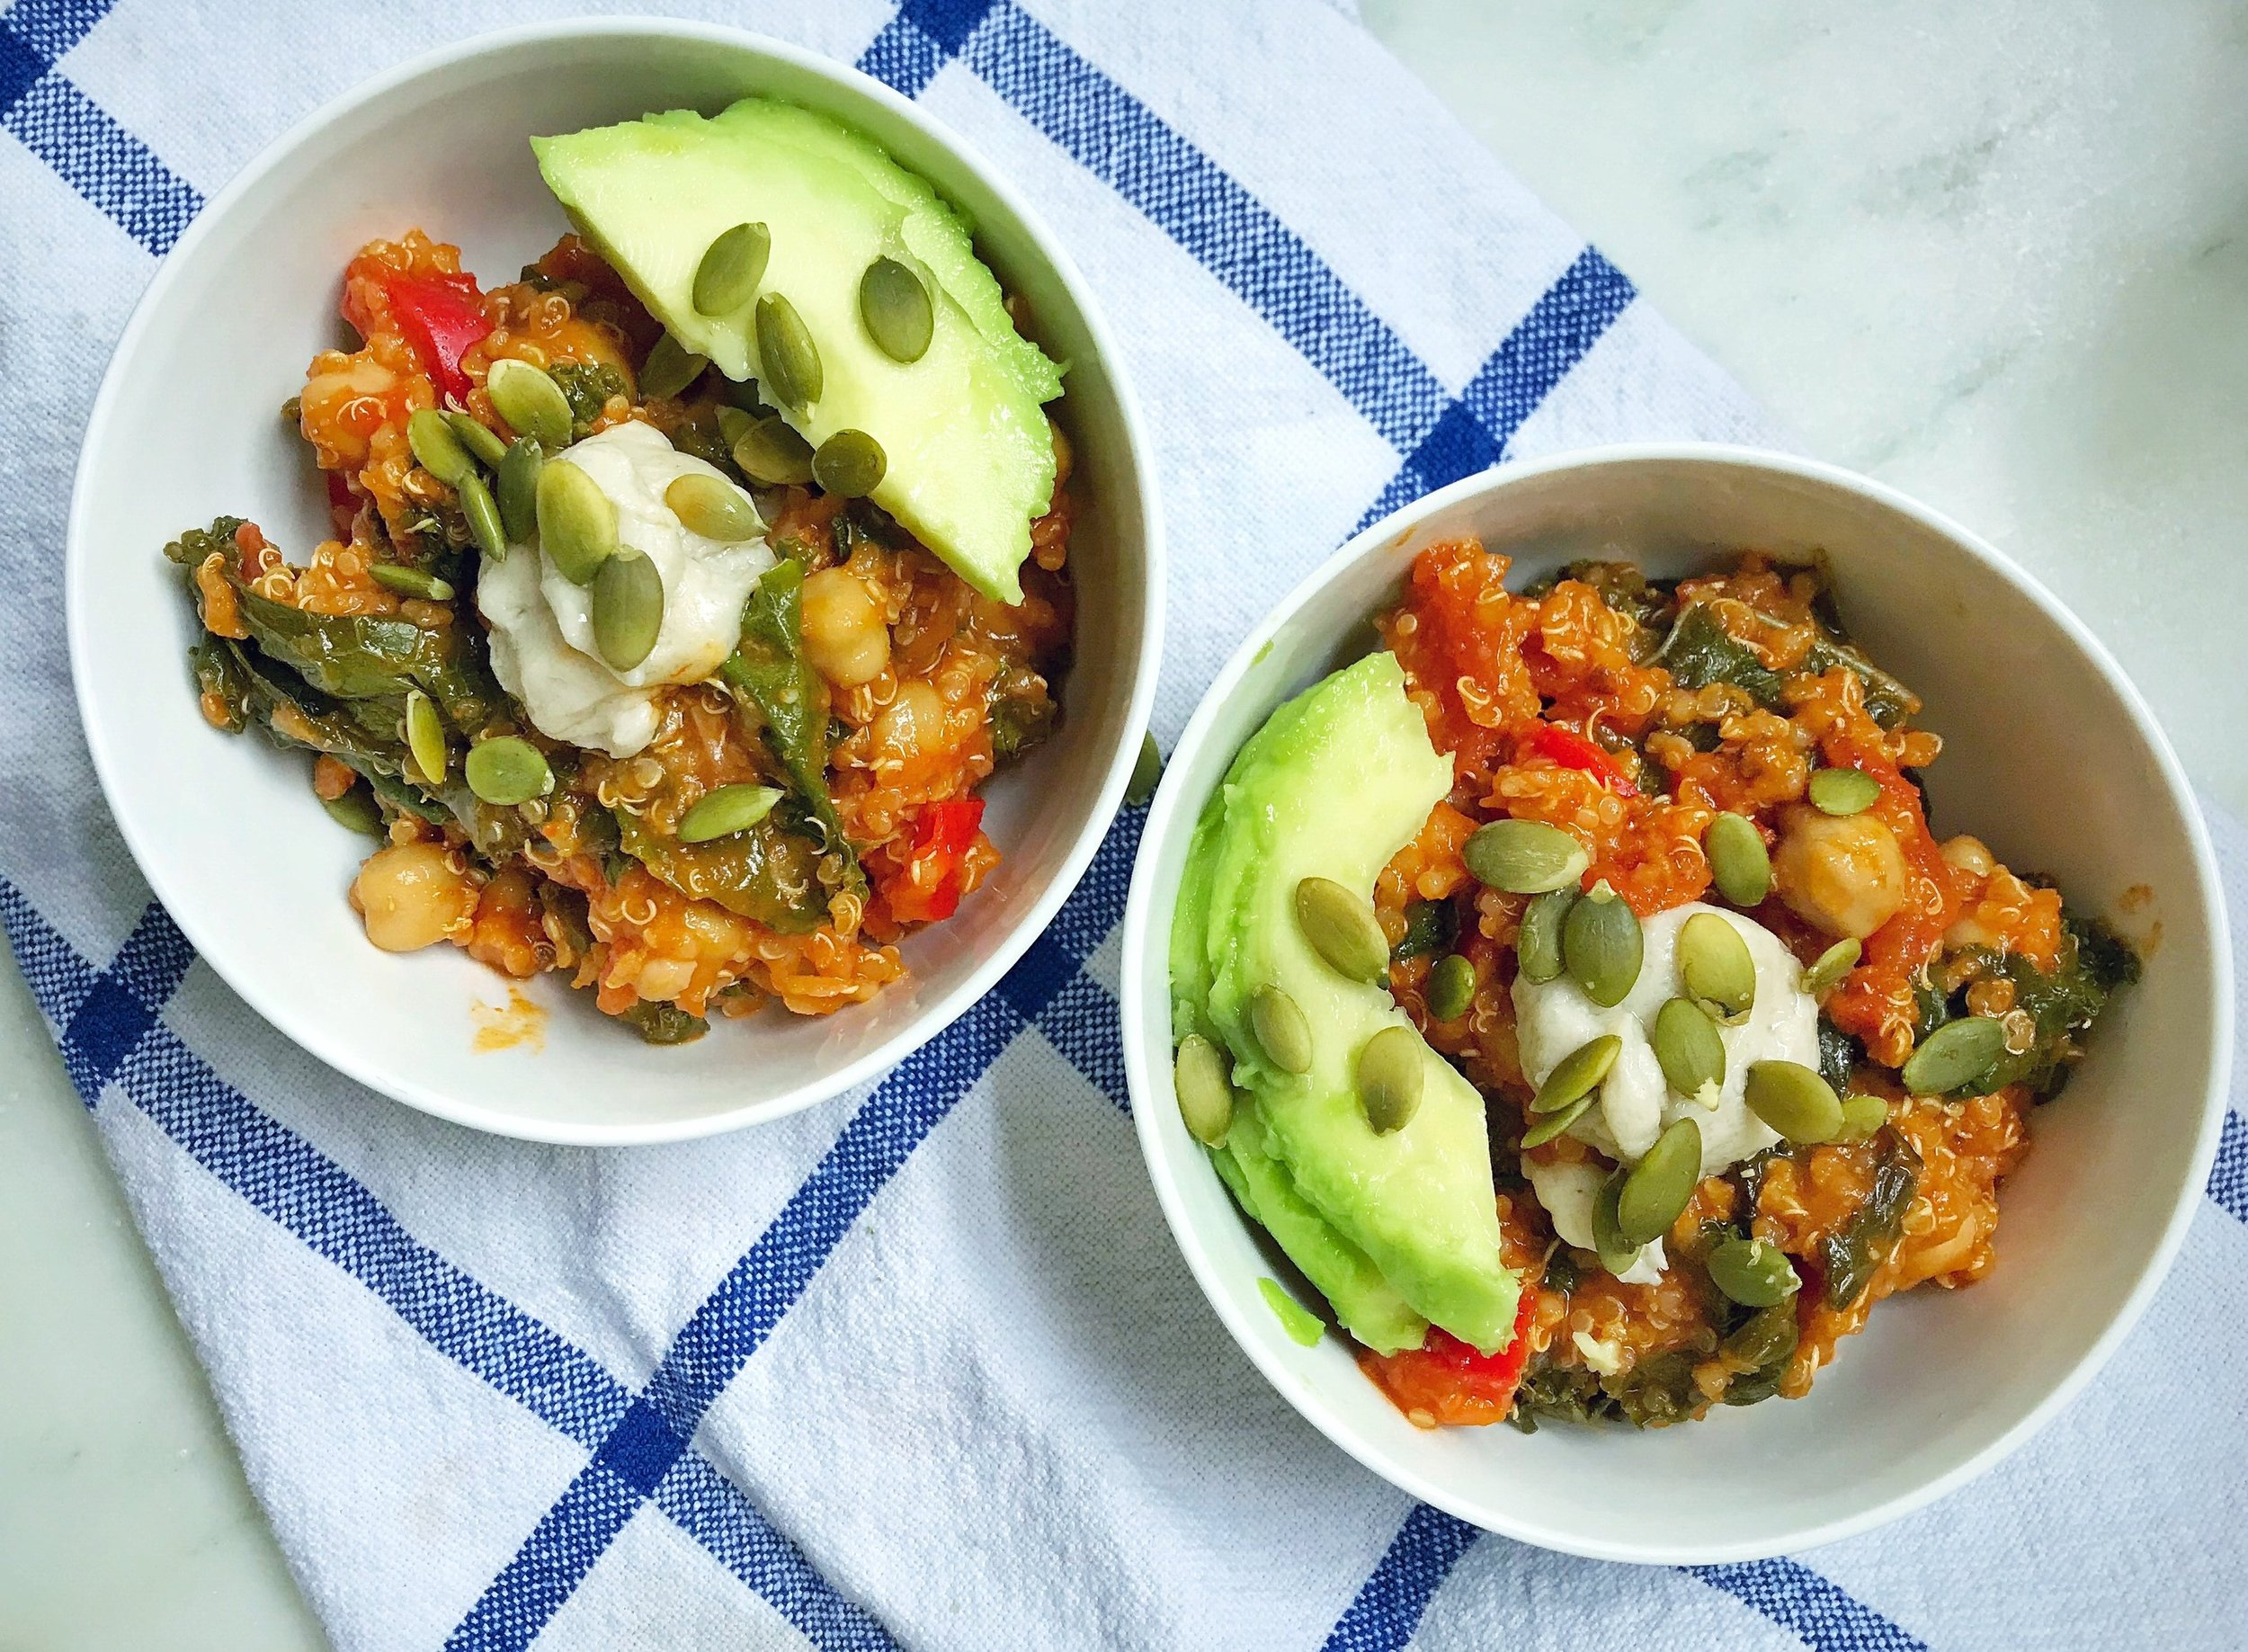 All the protein and good fats here: pumpkin/quinoa/chickpea chili topped with vegan mozz, avocado and pepitas!